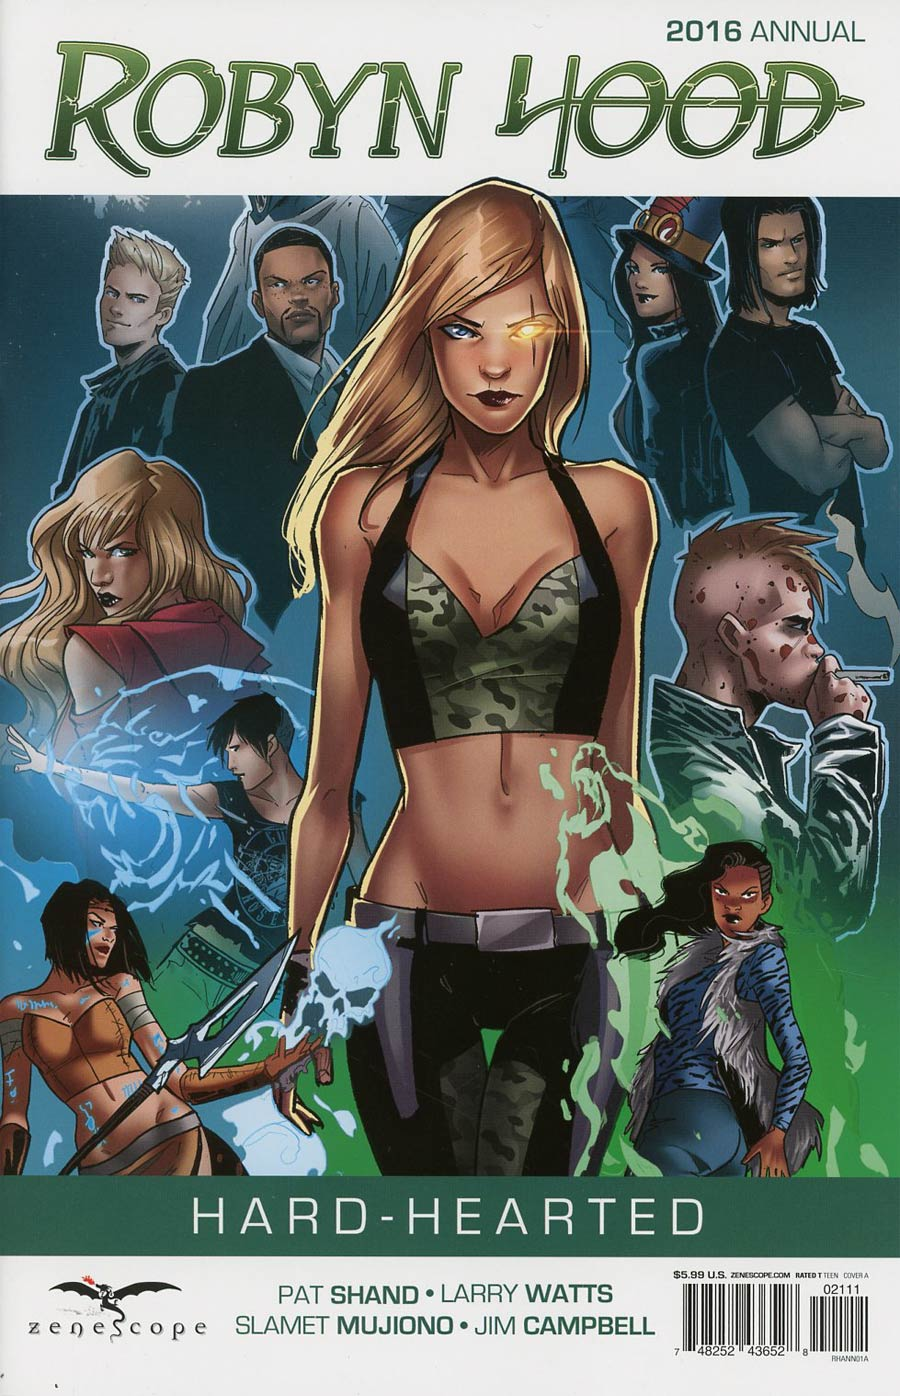 Grimm Fairy Tales Presents Robyn Hood Vol 2 Annual #1 Cover A Roberta Ingranata